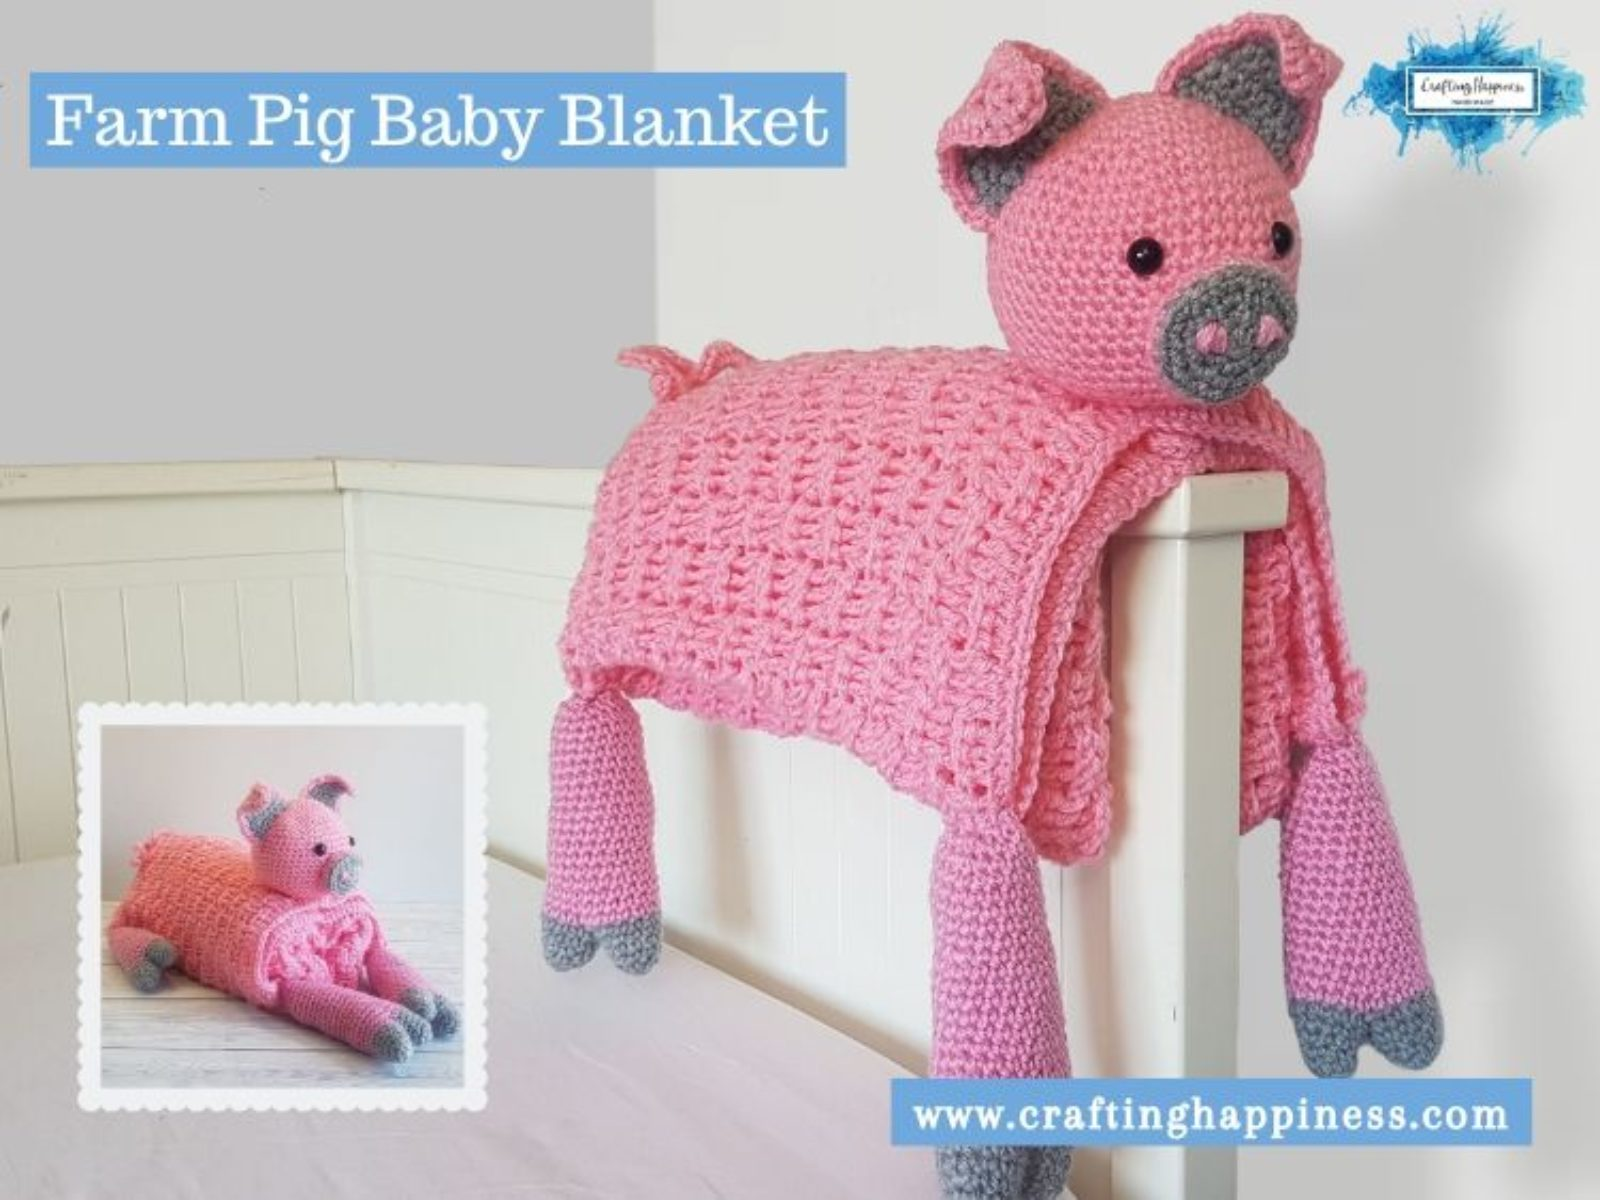 Farm Pig Baby Blanket by Crafting Happiness FACEBOOK POSTER